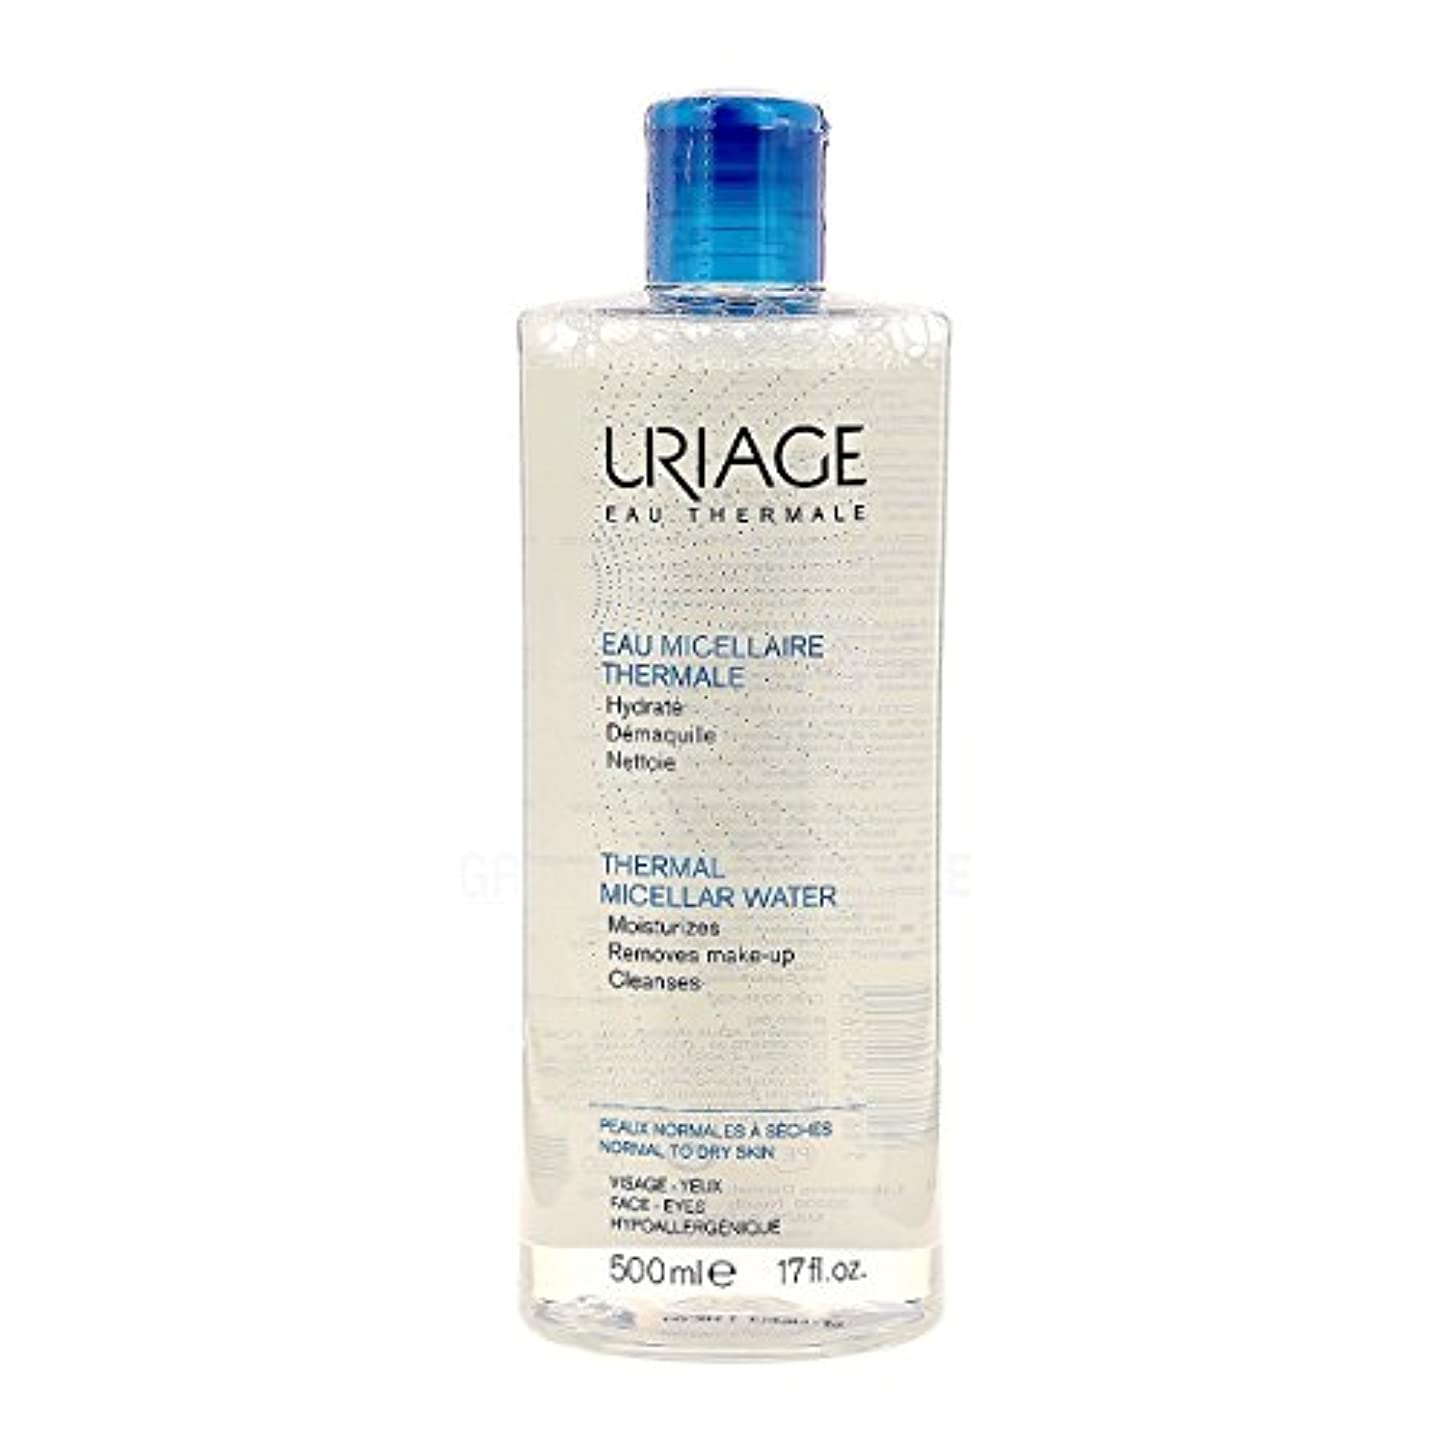 俳優雇用者百科事典Uriage Thermal Micellar Water Normal To Dry Skin 500ml [並行輸入品]